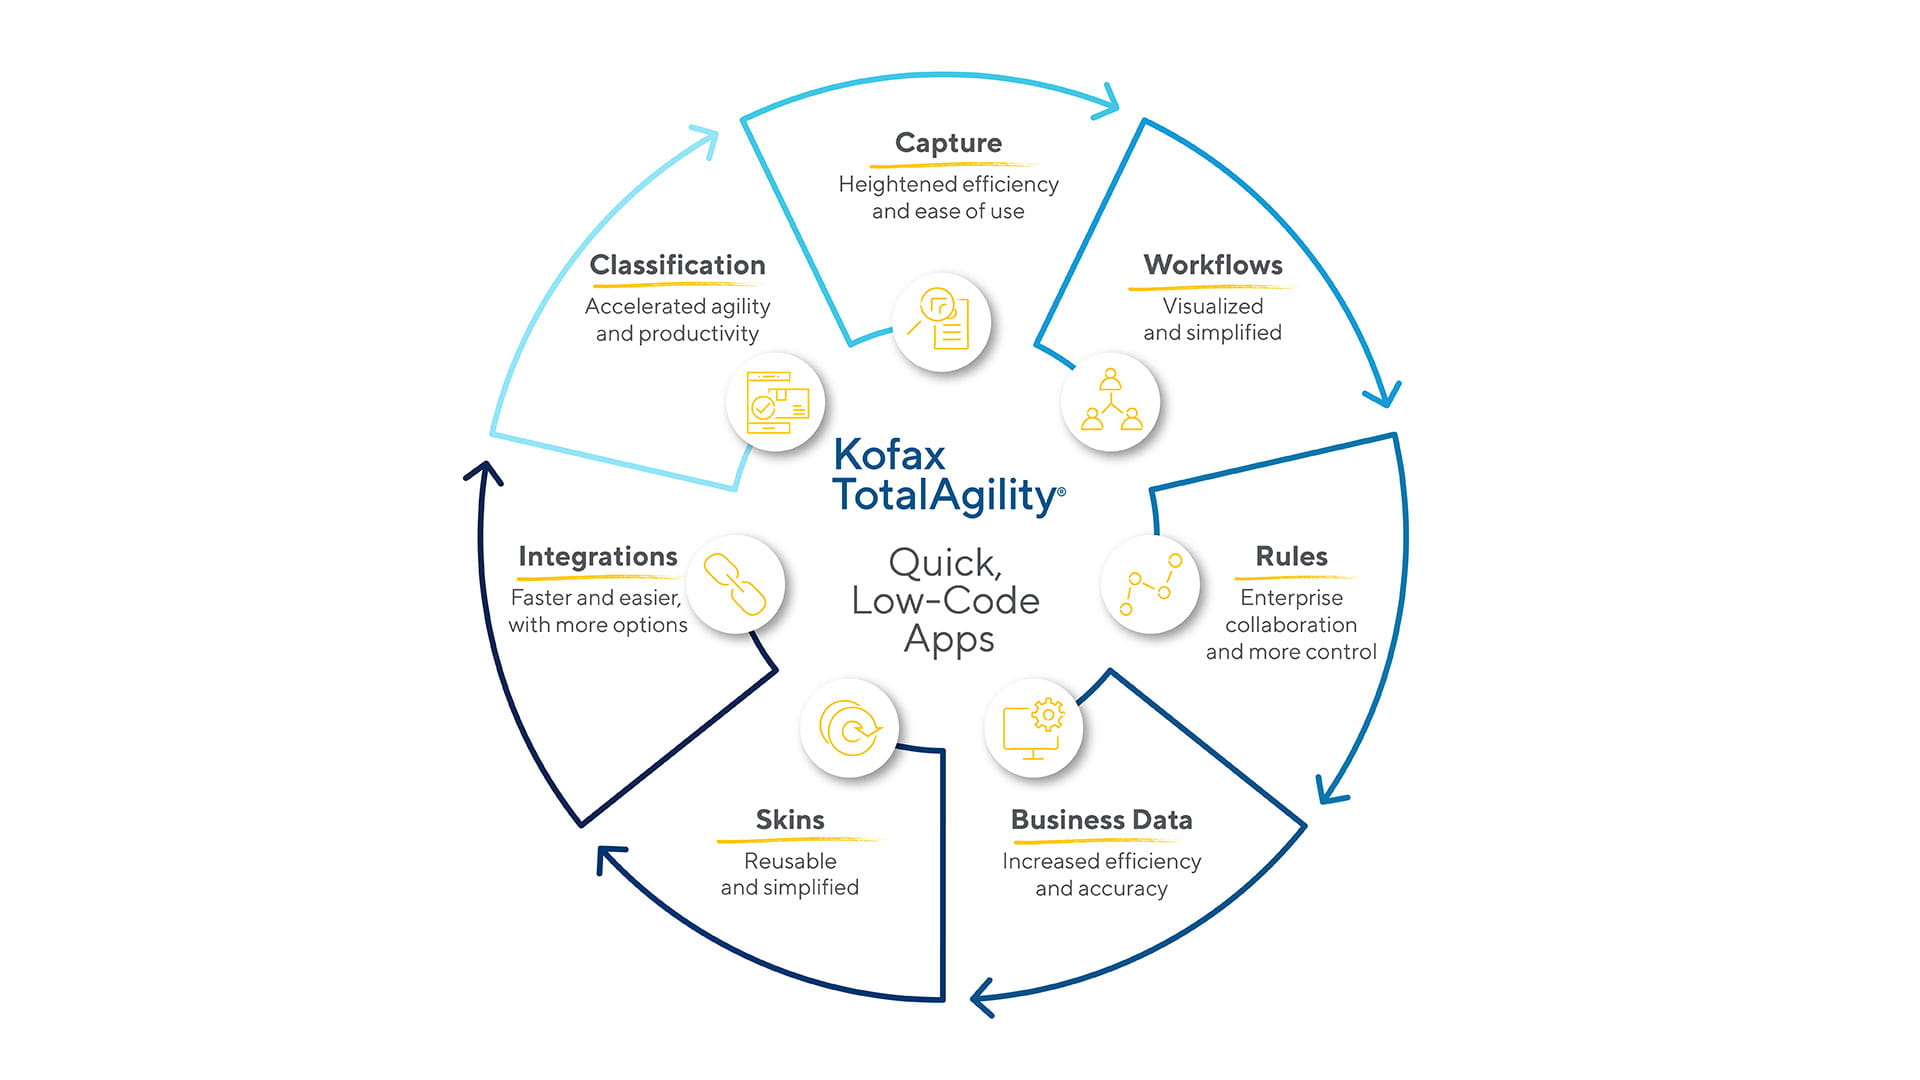 Kofax TotalAgility Quick Low-Code Apps